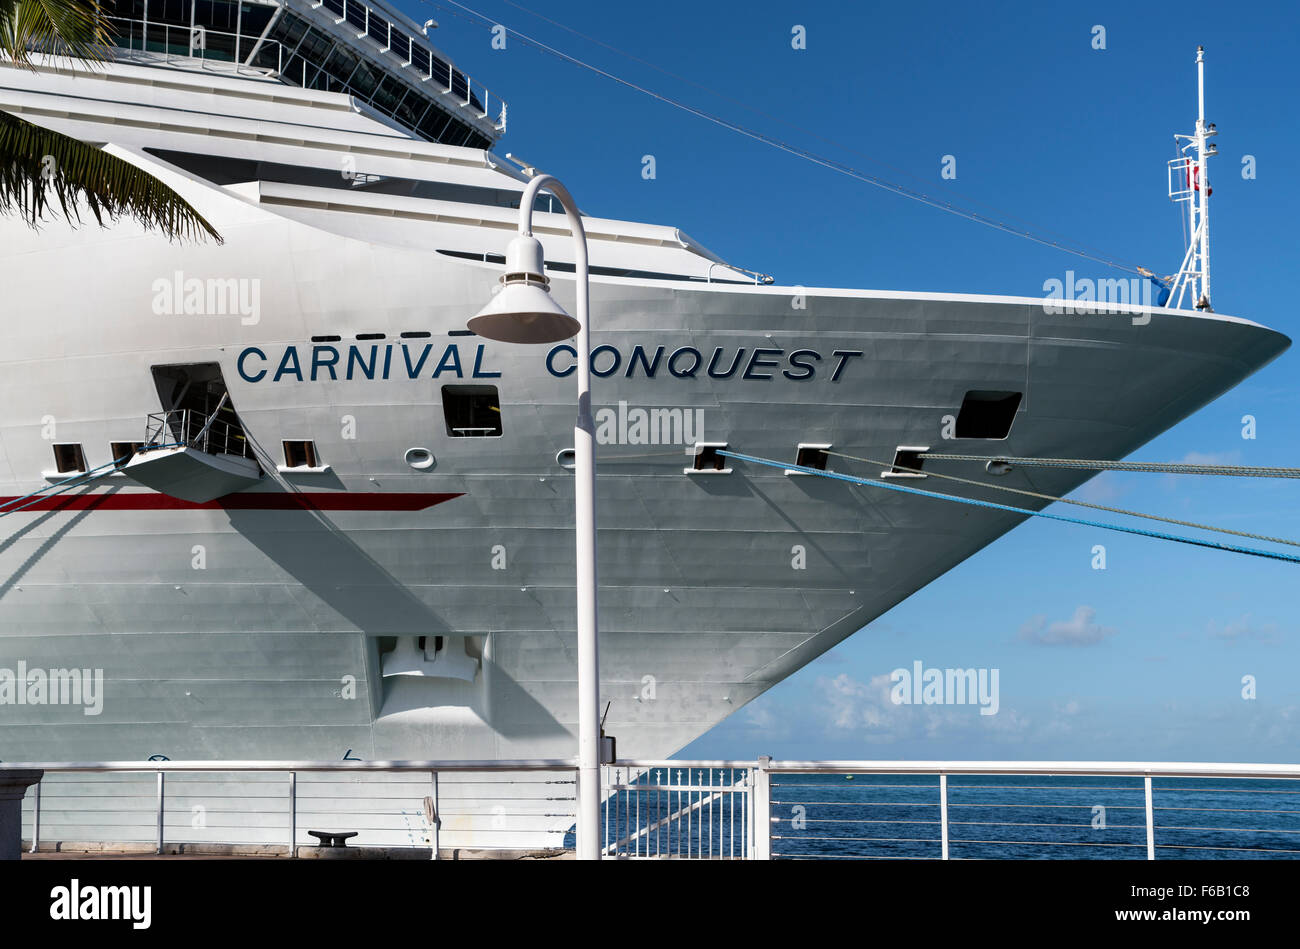 Carnival Conquest Cruise Liner berthed at Key West USA - Stock Image